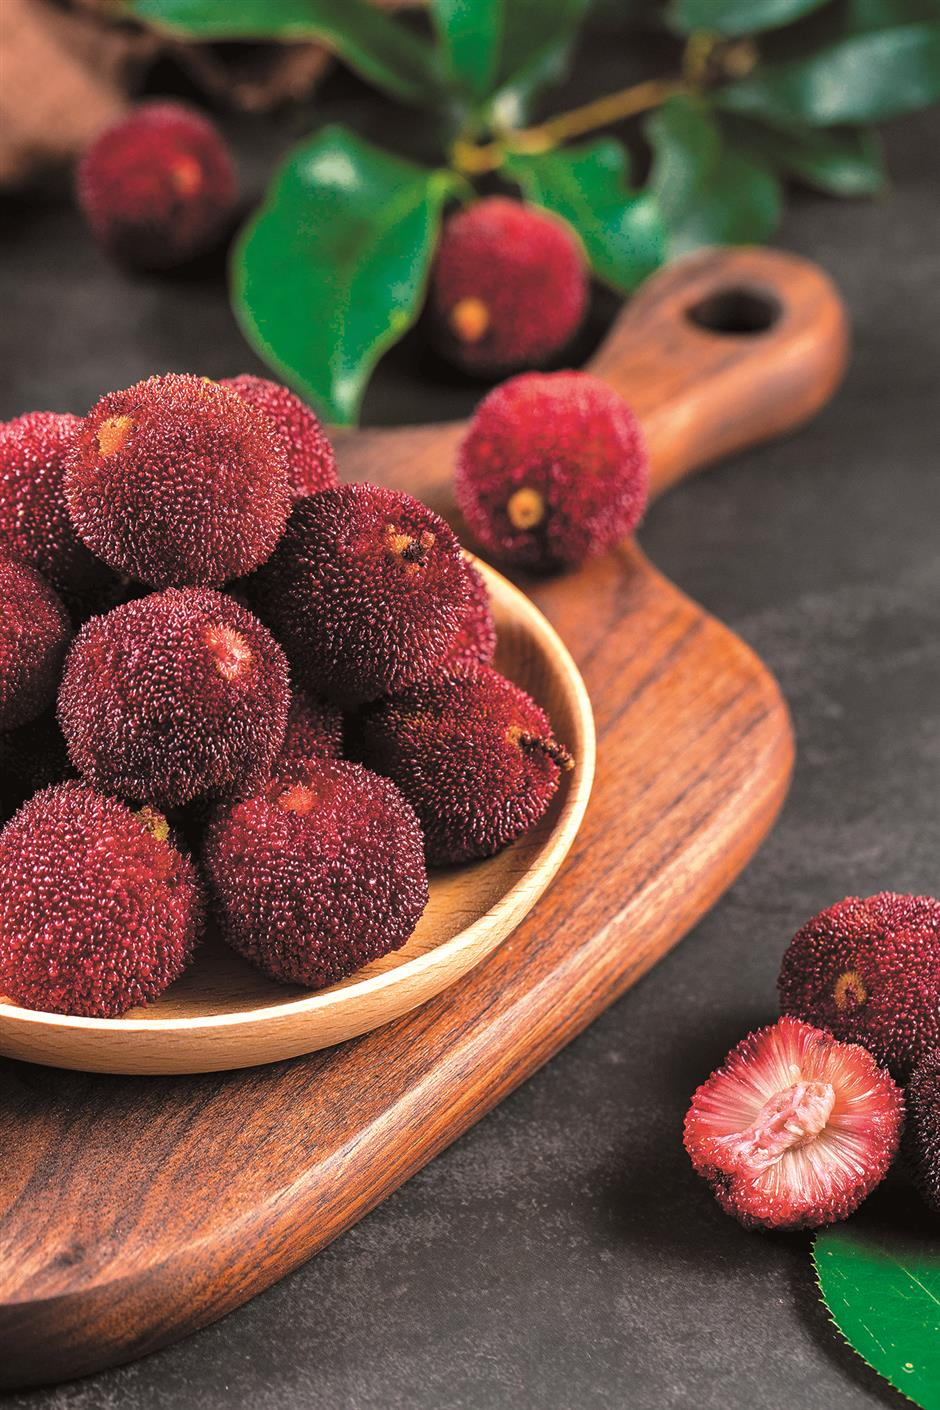 Get ready for summer fruits: don't mind the smell, just taste it